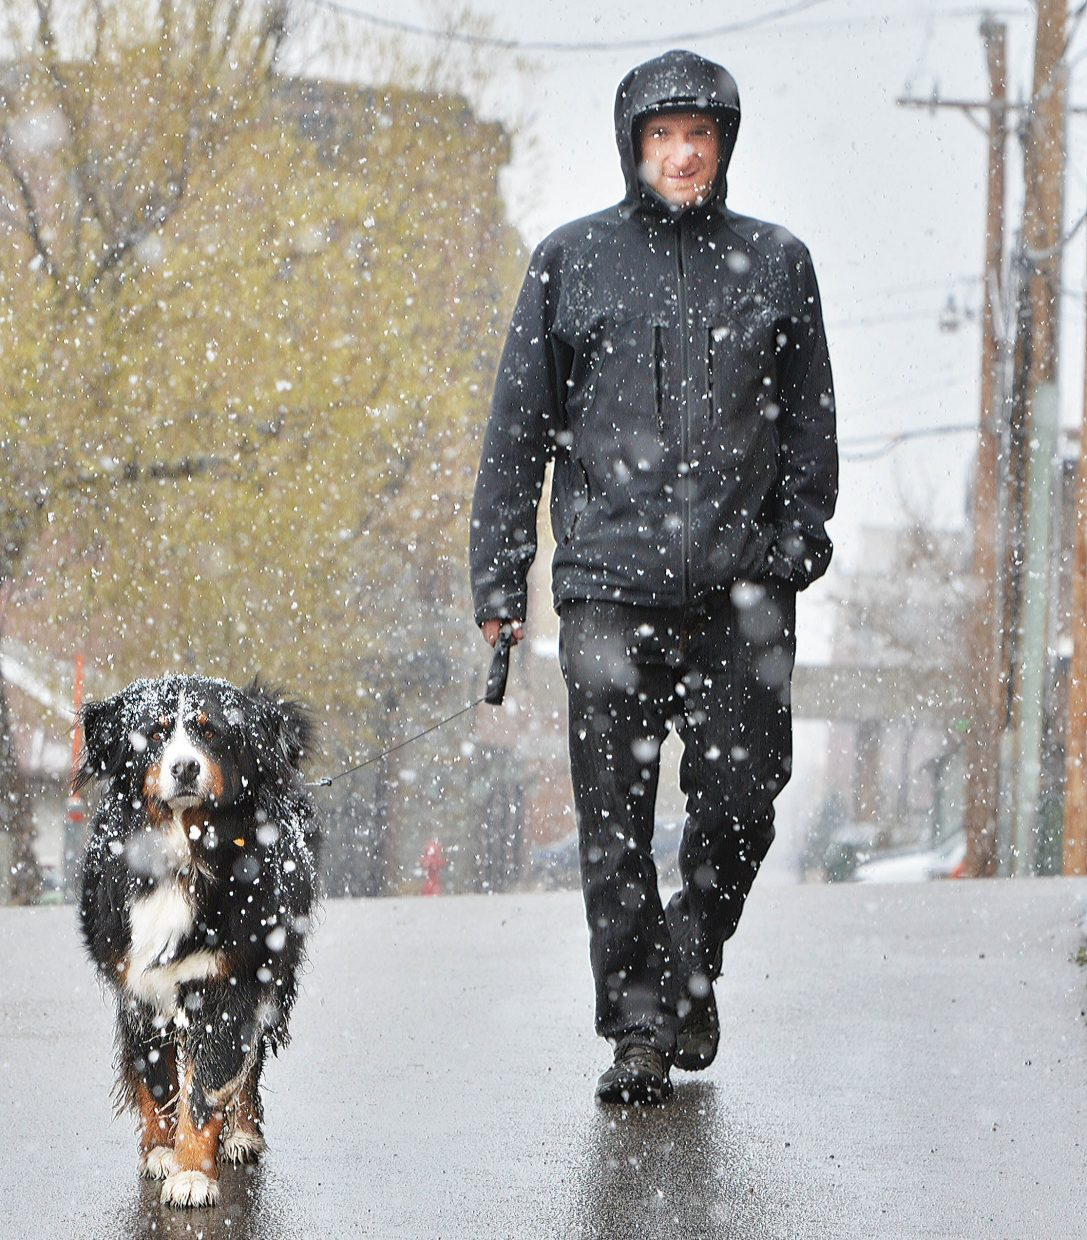 Brian Alpart and his dog, Marvin, make their way through downtown Steamboat Springs on Wednesday morning. The pair was greeted by falling snow as winter returned to the Yampa Valley for one more round.